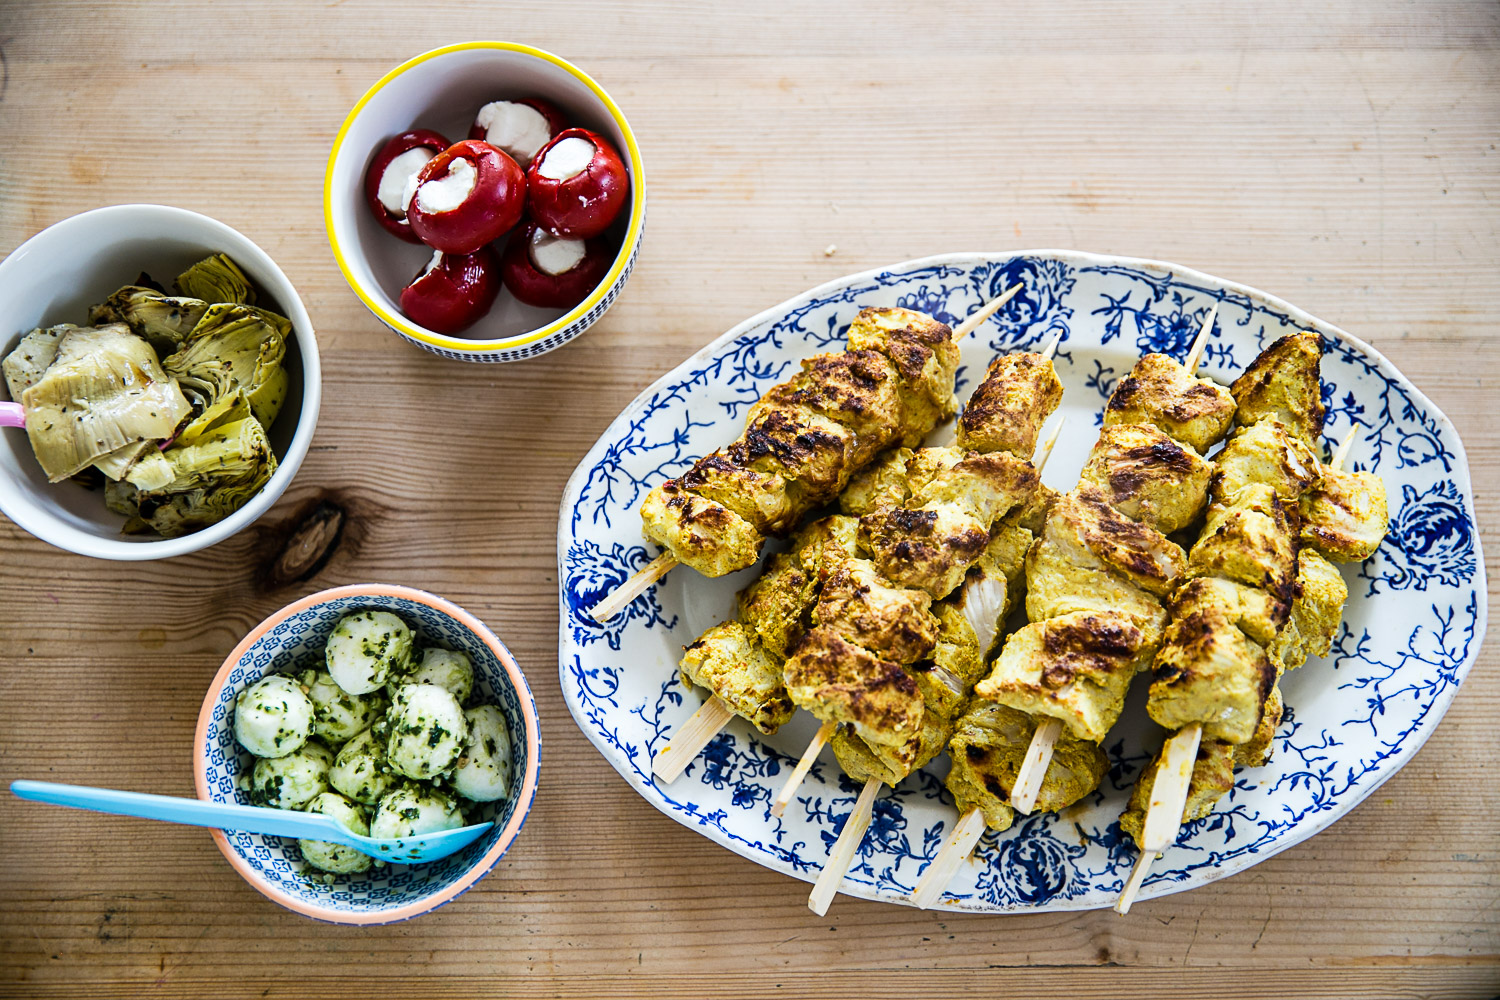 Chicken Tikka Skewers Recipe Easy Barbecue Summer Entertaining from Housewife Confidential